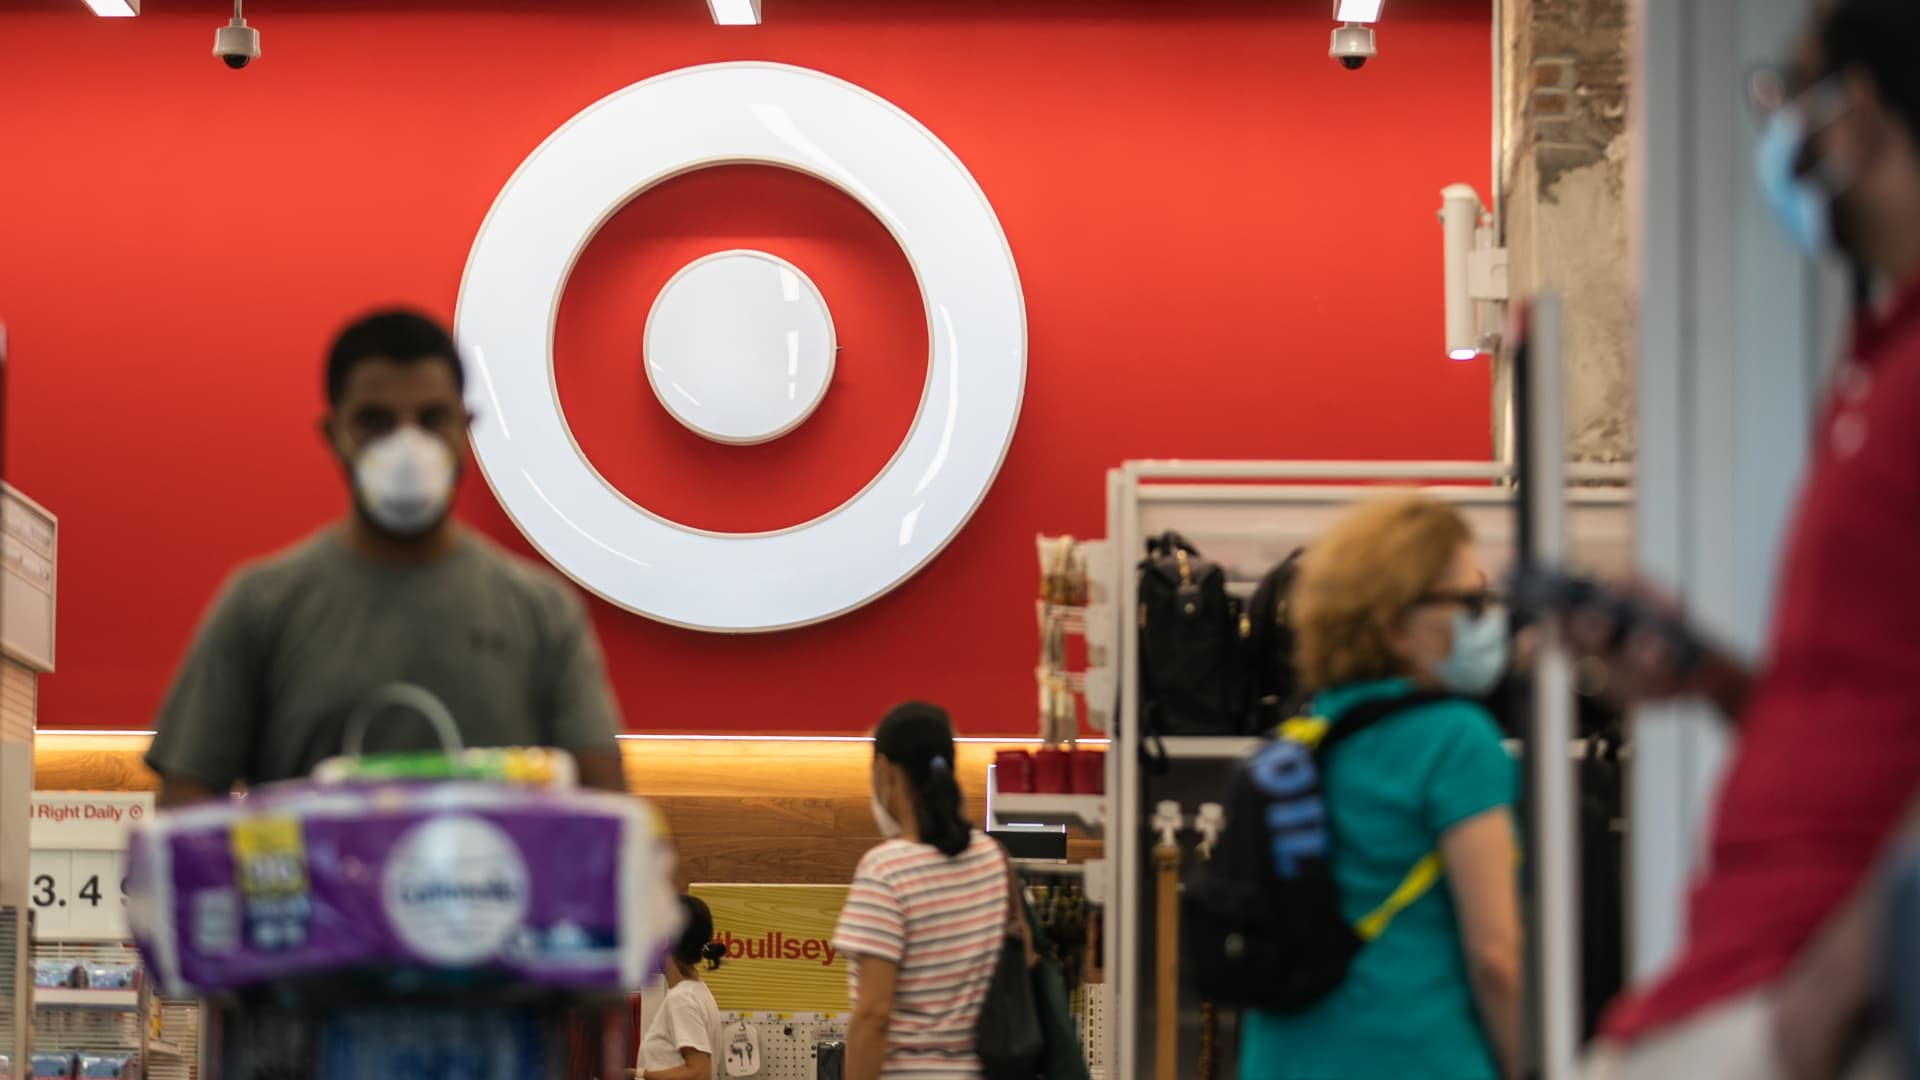 Shoppers wear protective masks inside a Target Corp. store in New York, U.S., on Saturday, Aug. 15, 2020. Target is scheduled to release earnings figures on August 19.